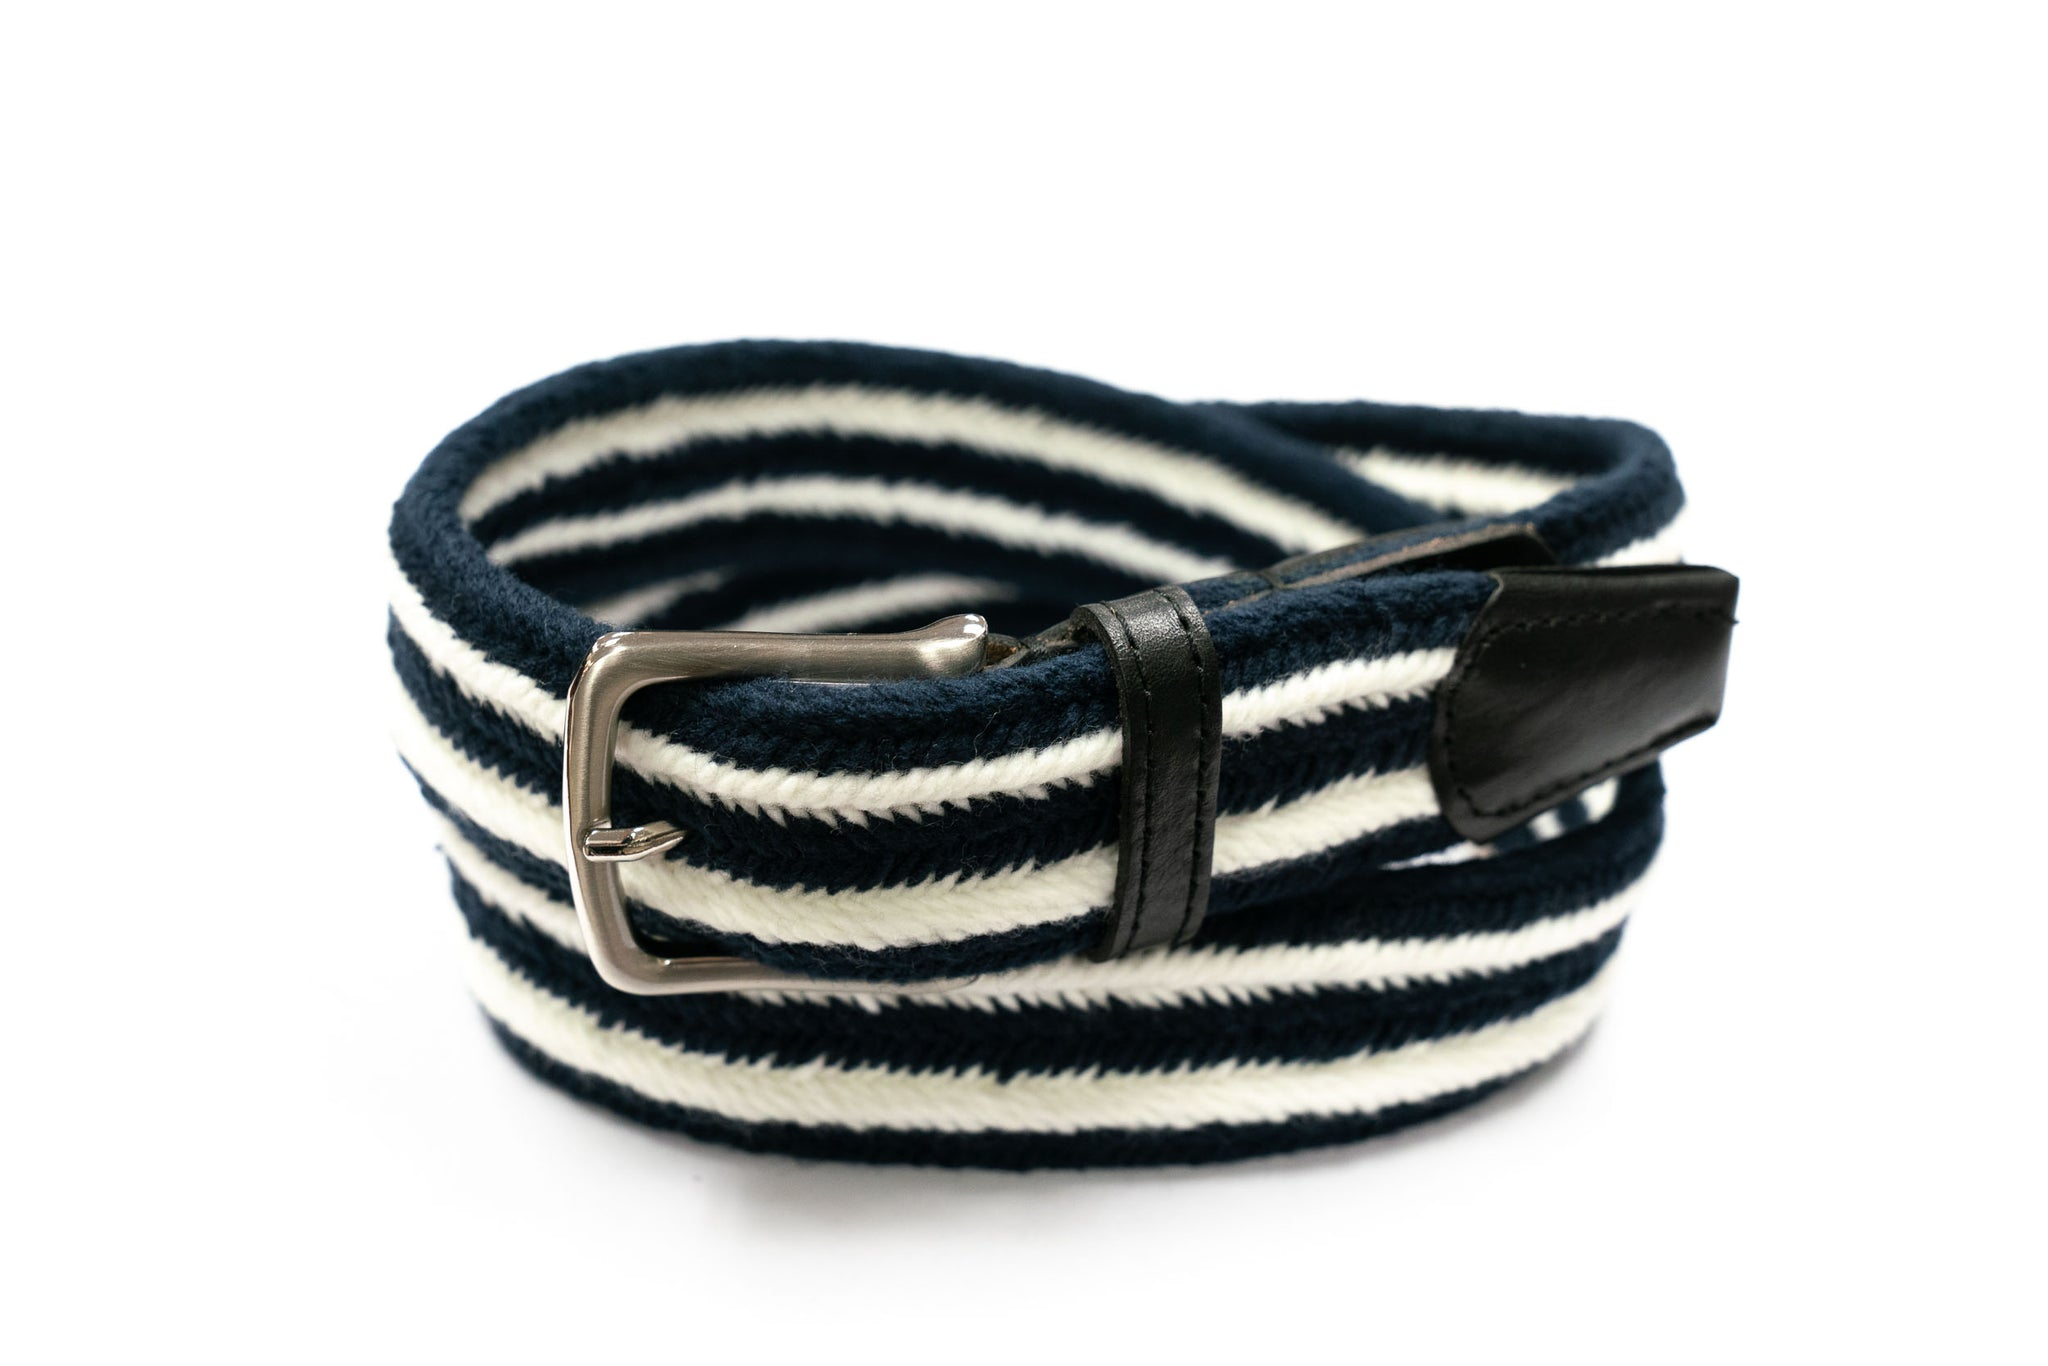 Navy & White Striped Cotton Webbed Belt - Rainwater's Men's Clothing and Tuxedo Rental